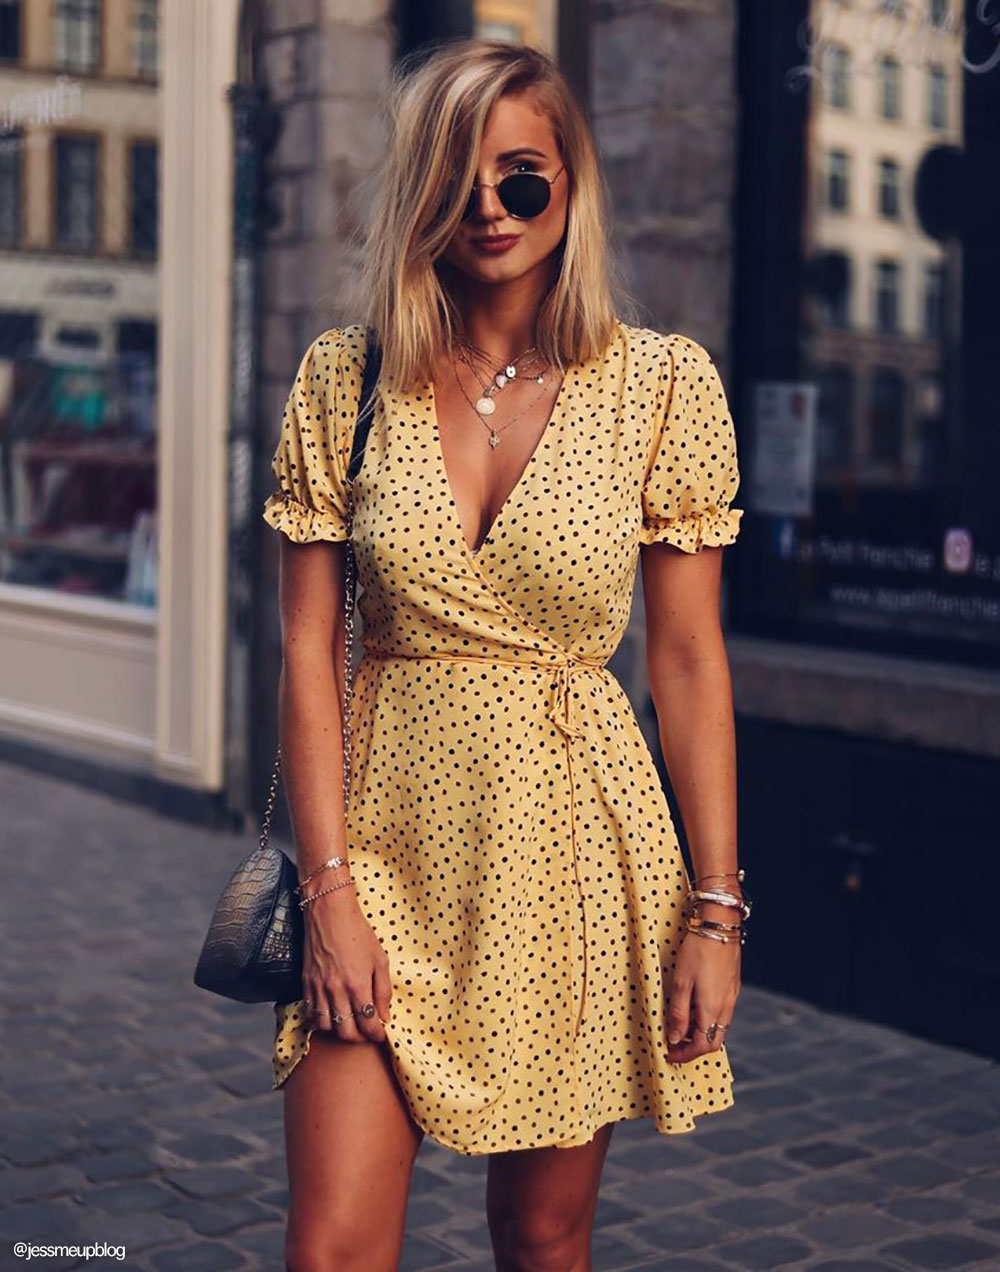 Color Shoes to Wear With a Yellow Dress